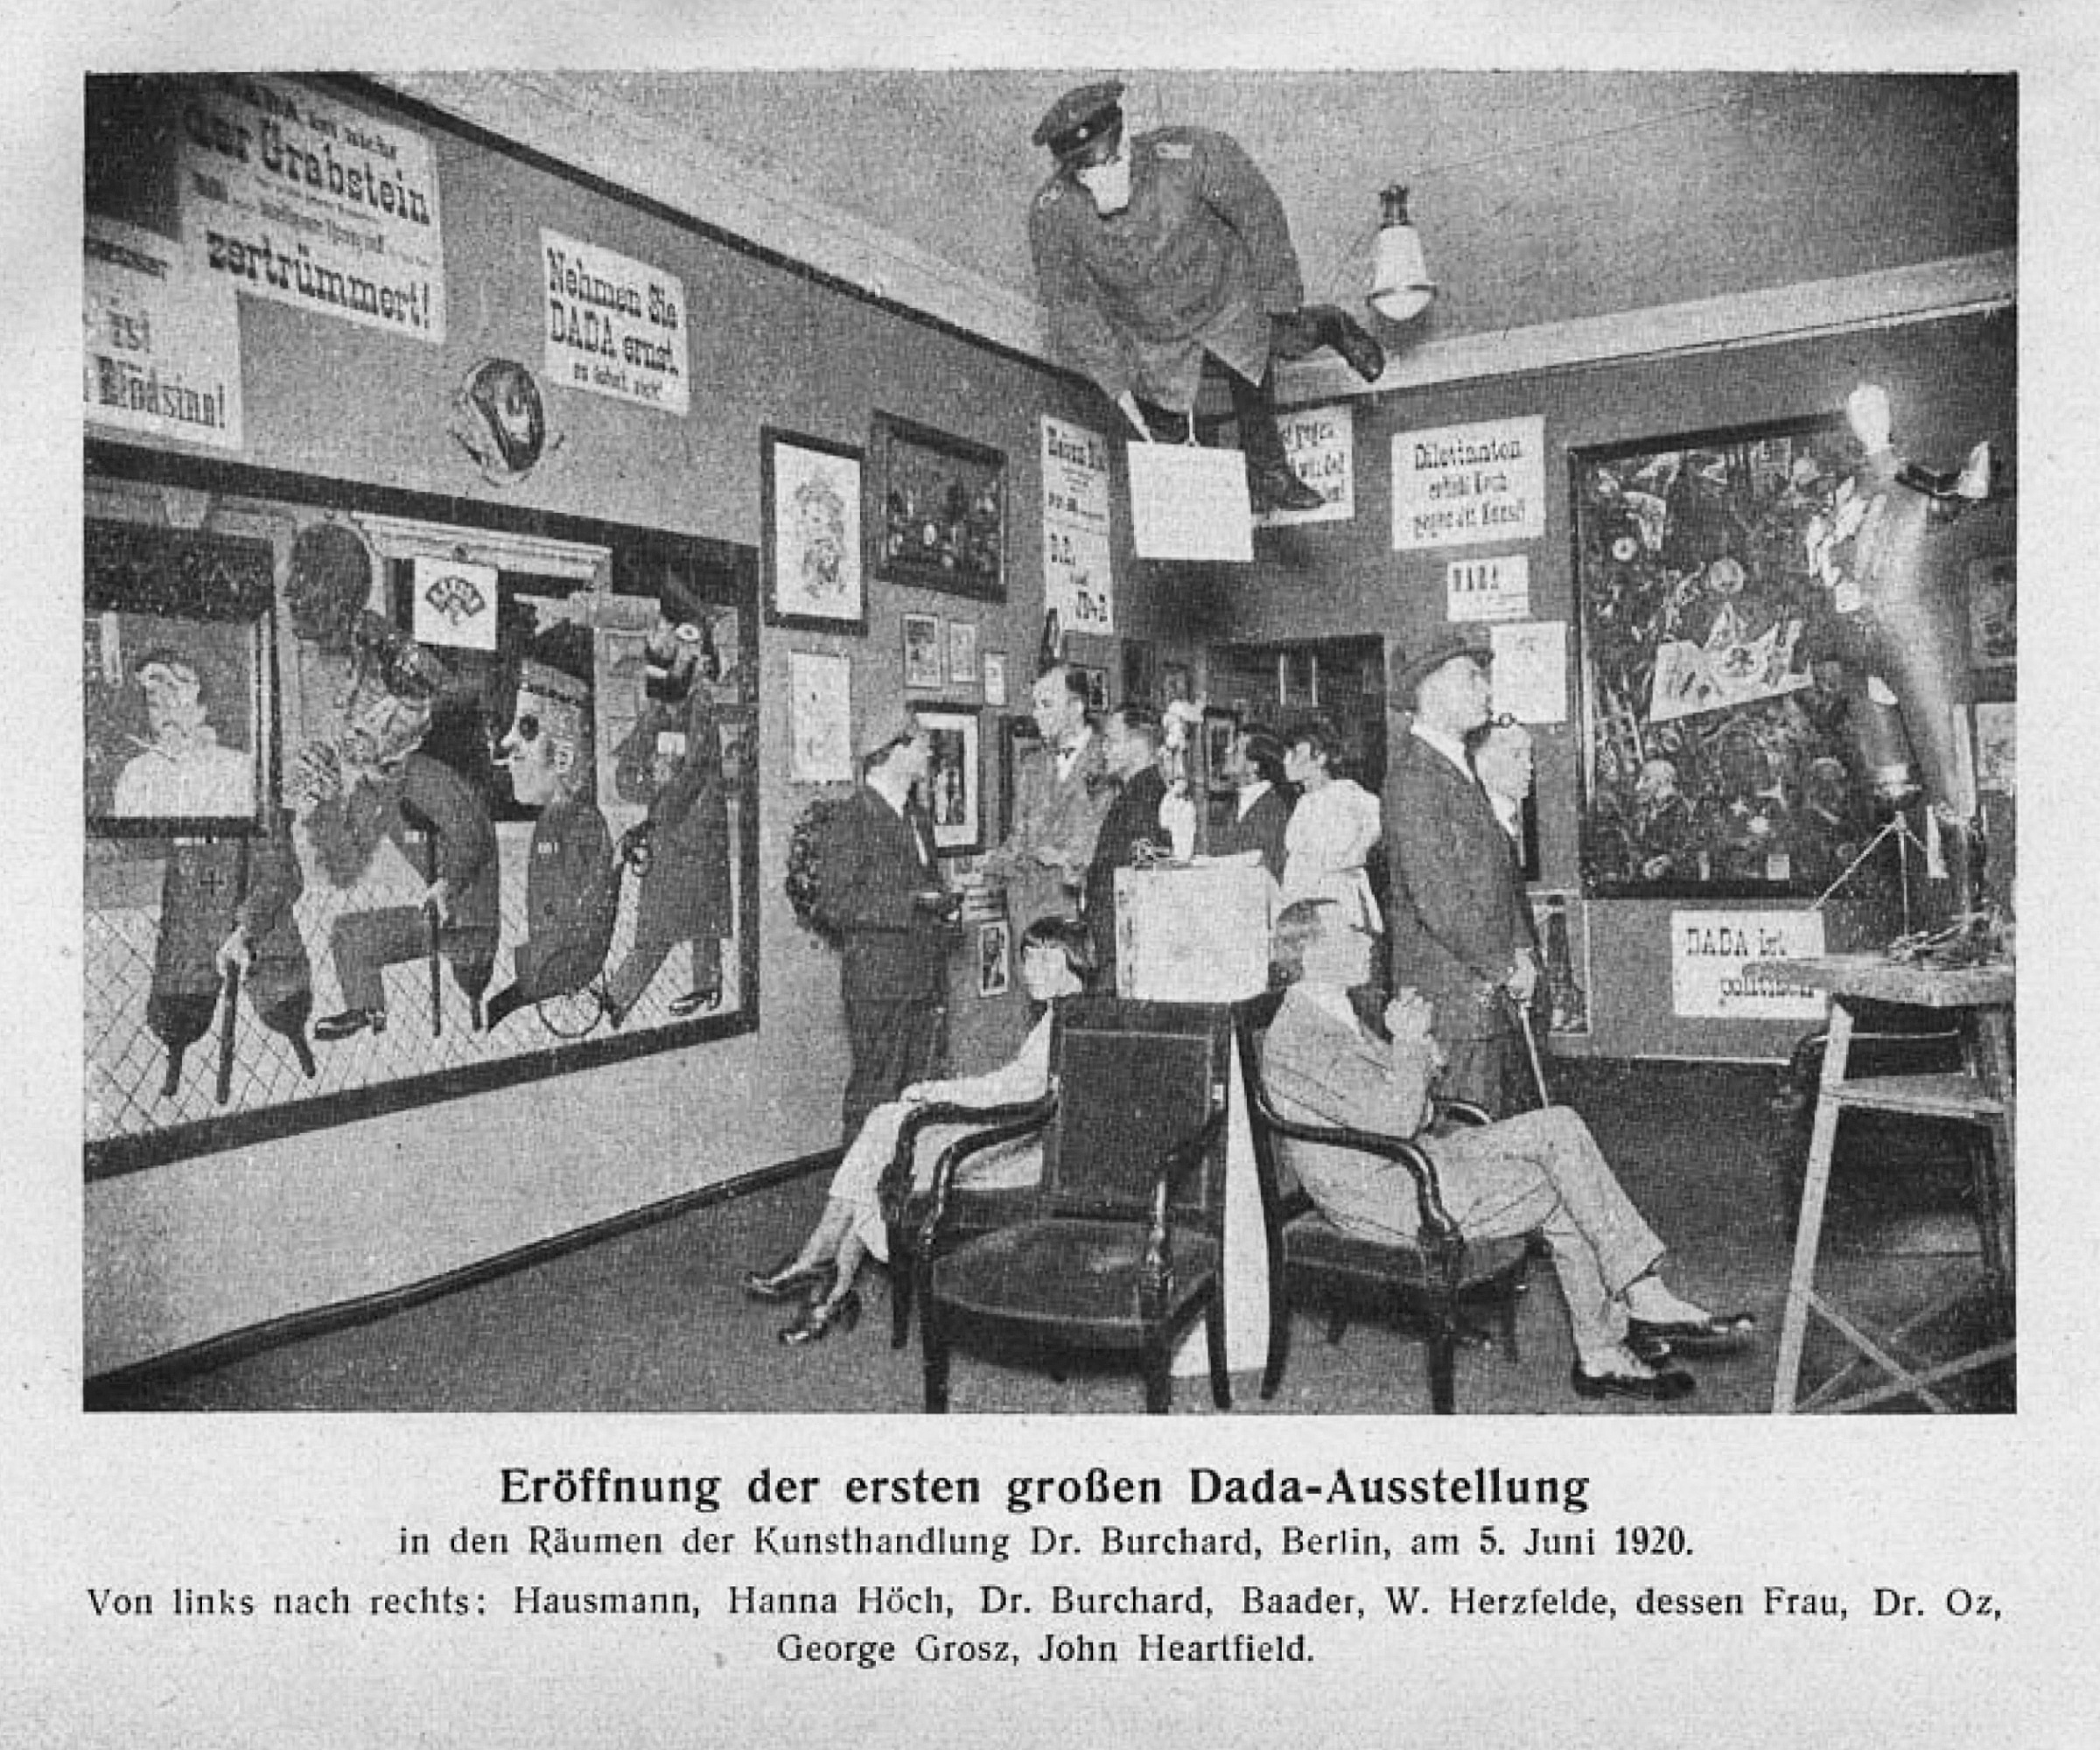 Grand opening of the first Dada exhibition, Berlin, 5 June 1920. The central figure hanging from the ceiling was an effigy of a German officer with a pigs head. From left to right: Raoul Hausmann, Hannah Höch (sitting), Otto Burchard, Johannes Baader, Wieland Herzfelde, Margarete Herzfelde, dr. Oz (Otto Schmalhausen), George Grosz and John Heartfield. Photo: Unknown. Public Domain.